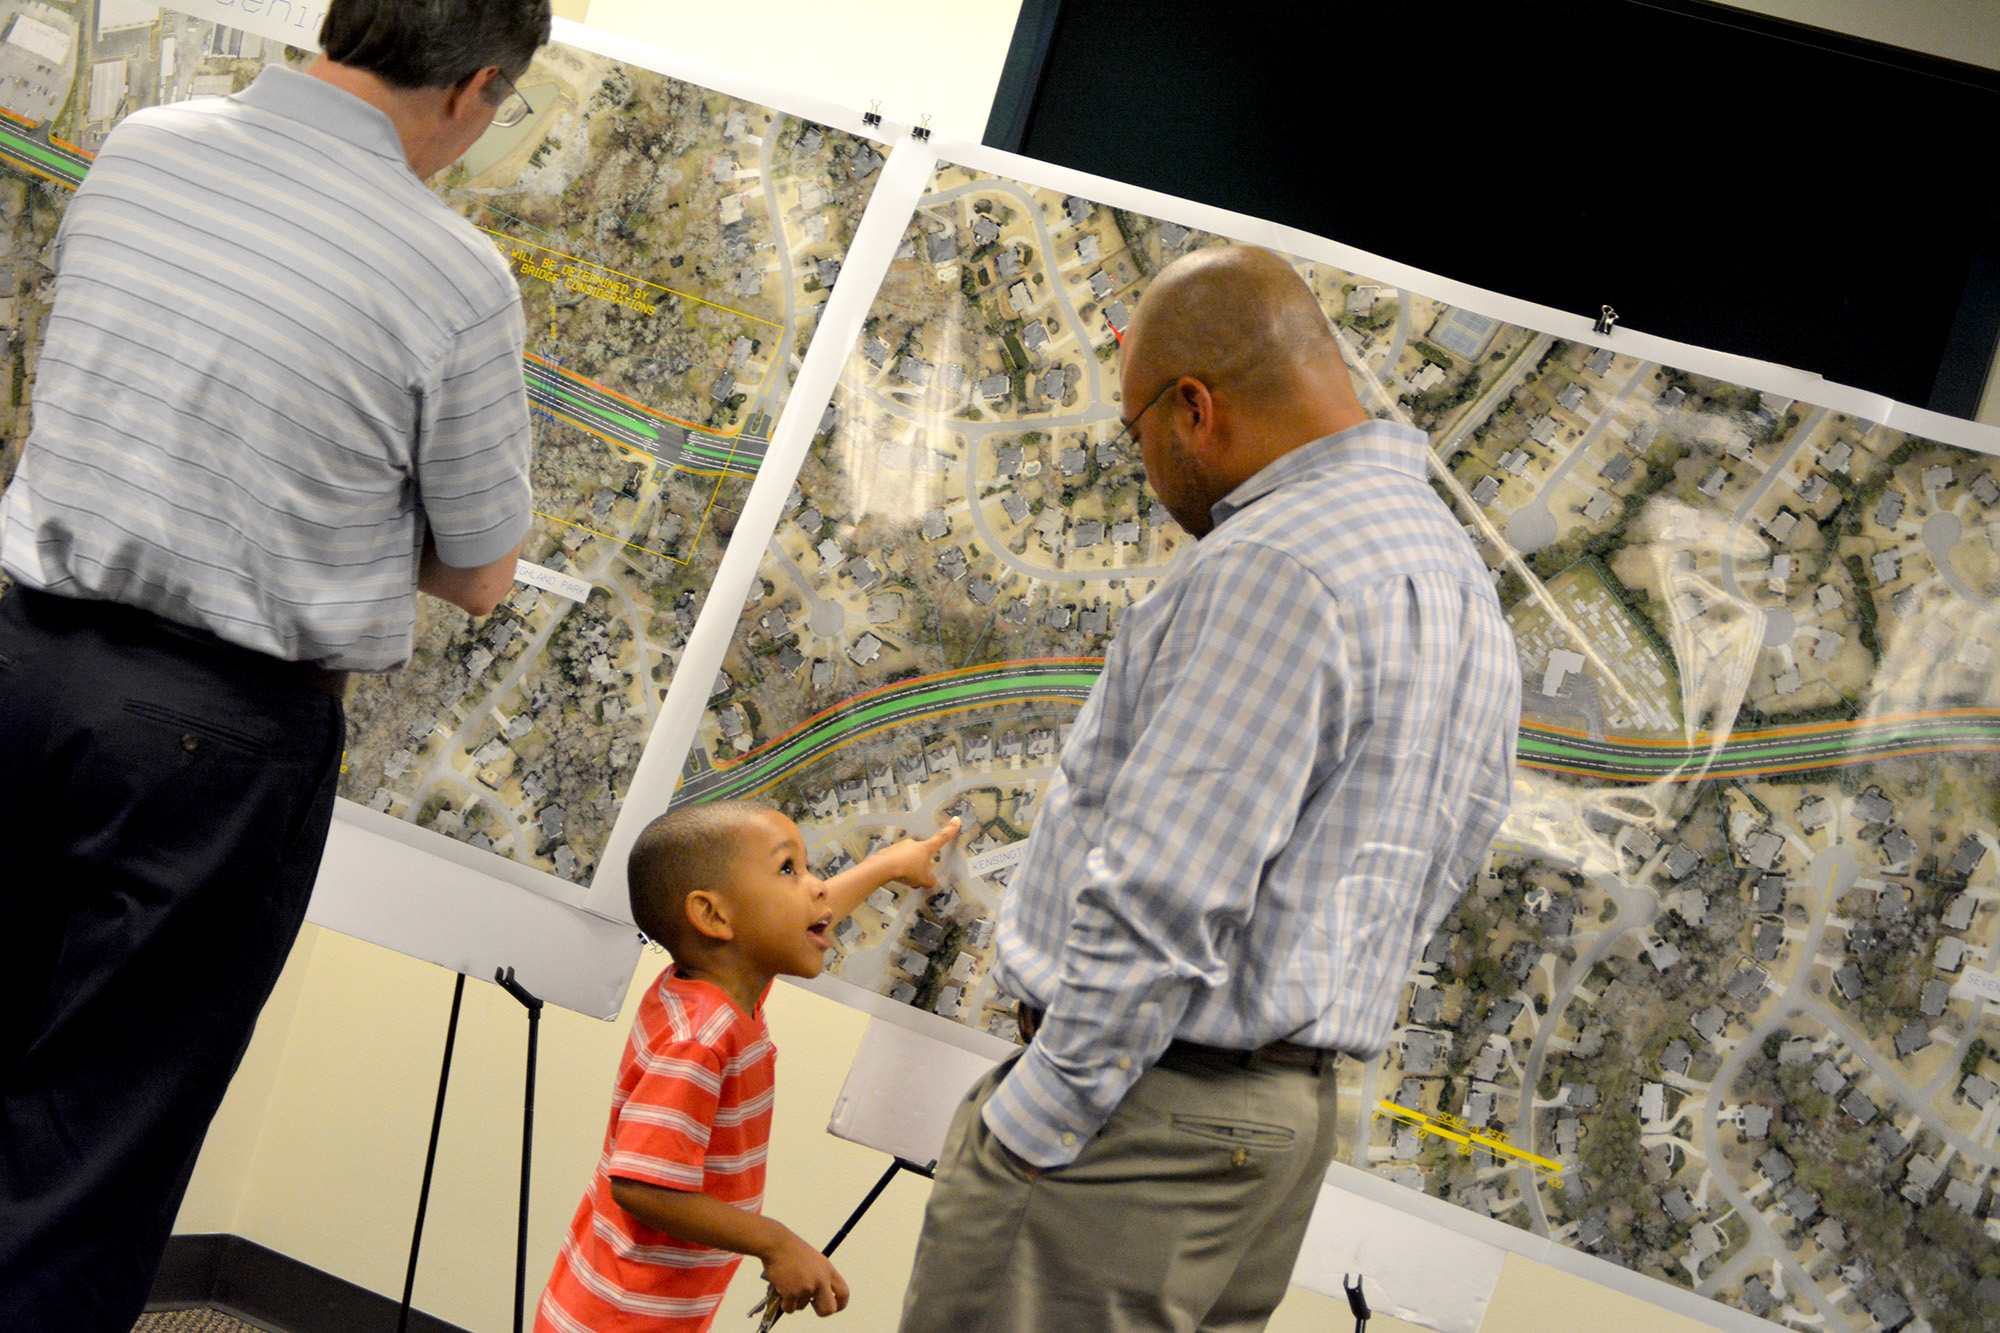 Monthly transportation meeting to discuss TSPLOST on Nov. 16